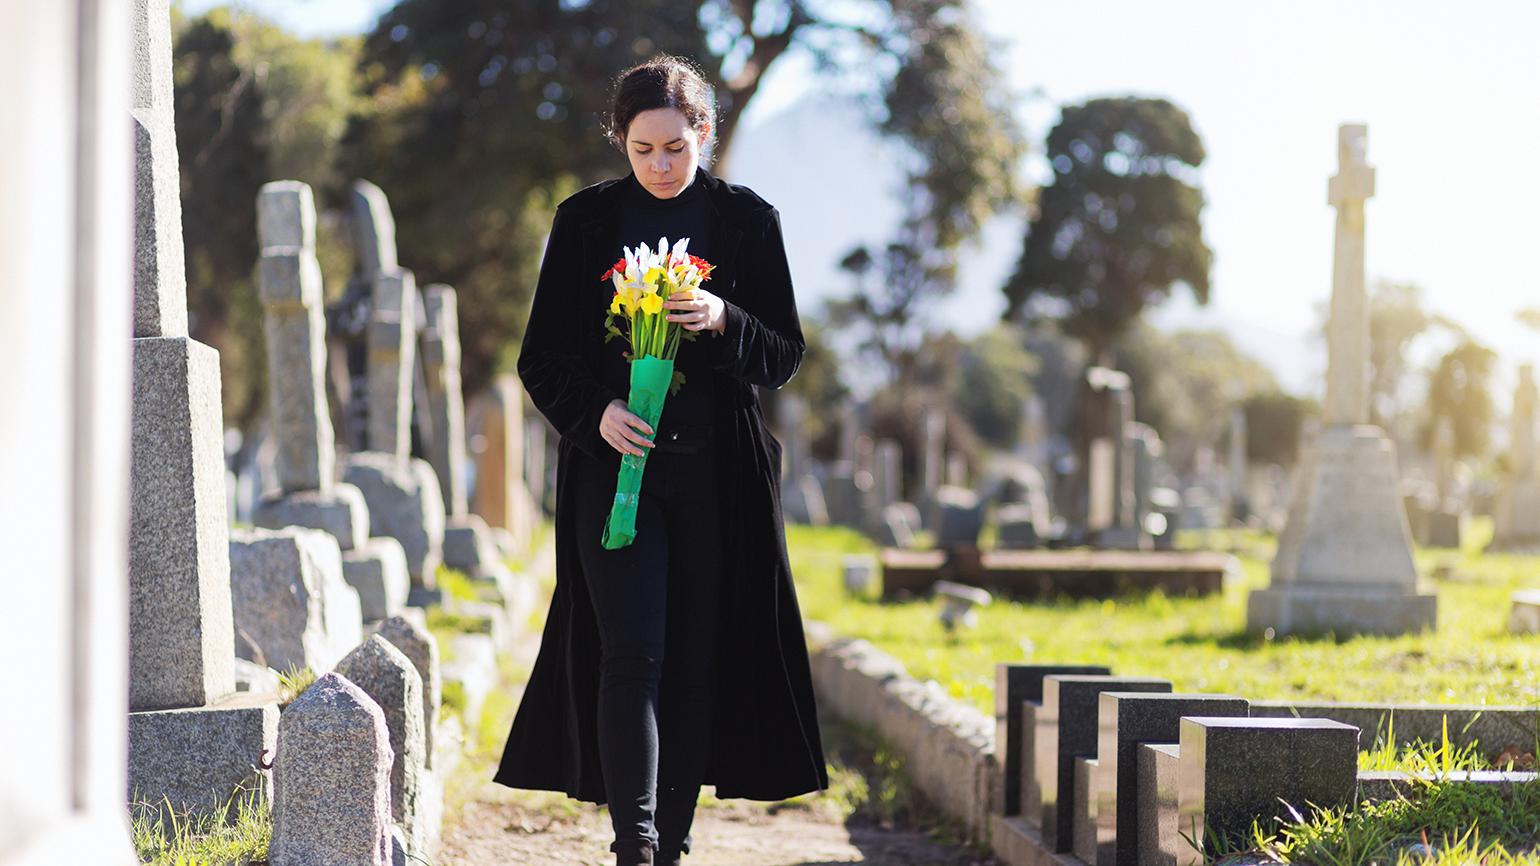 A grieving woman brings flowers to a cemetery